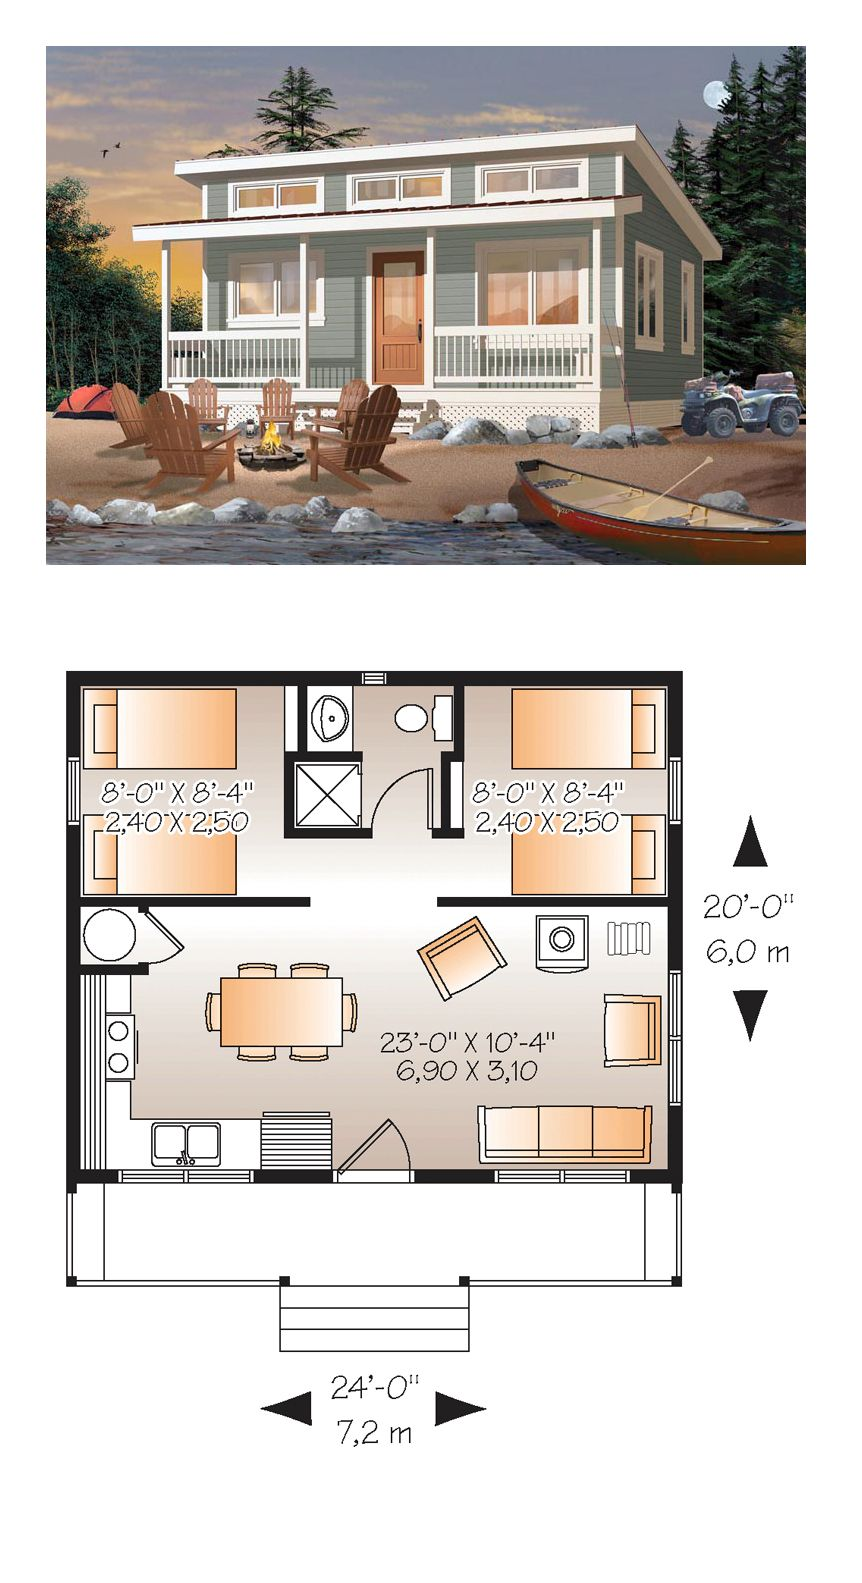 Tiny house plan 76166 total living area 480 sq ft 2 for 2 bathroom tiny house